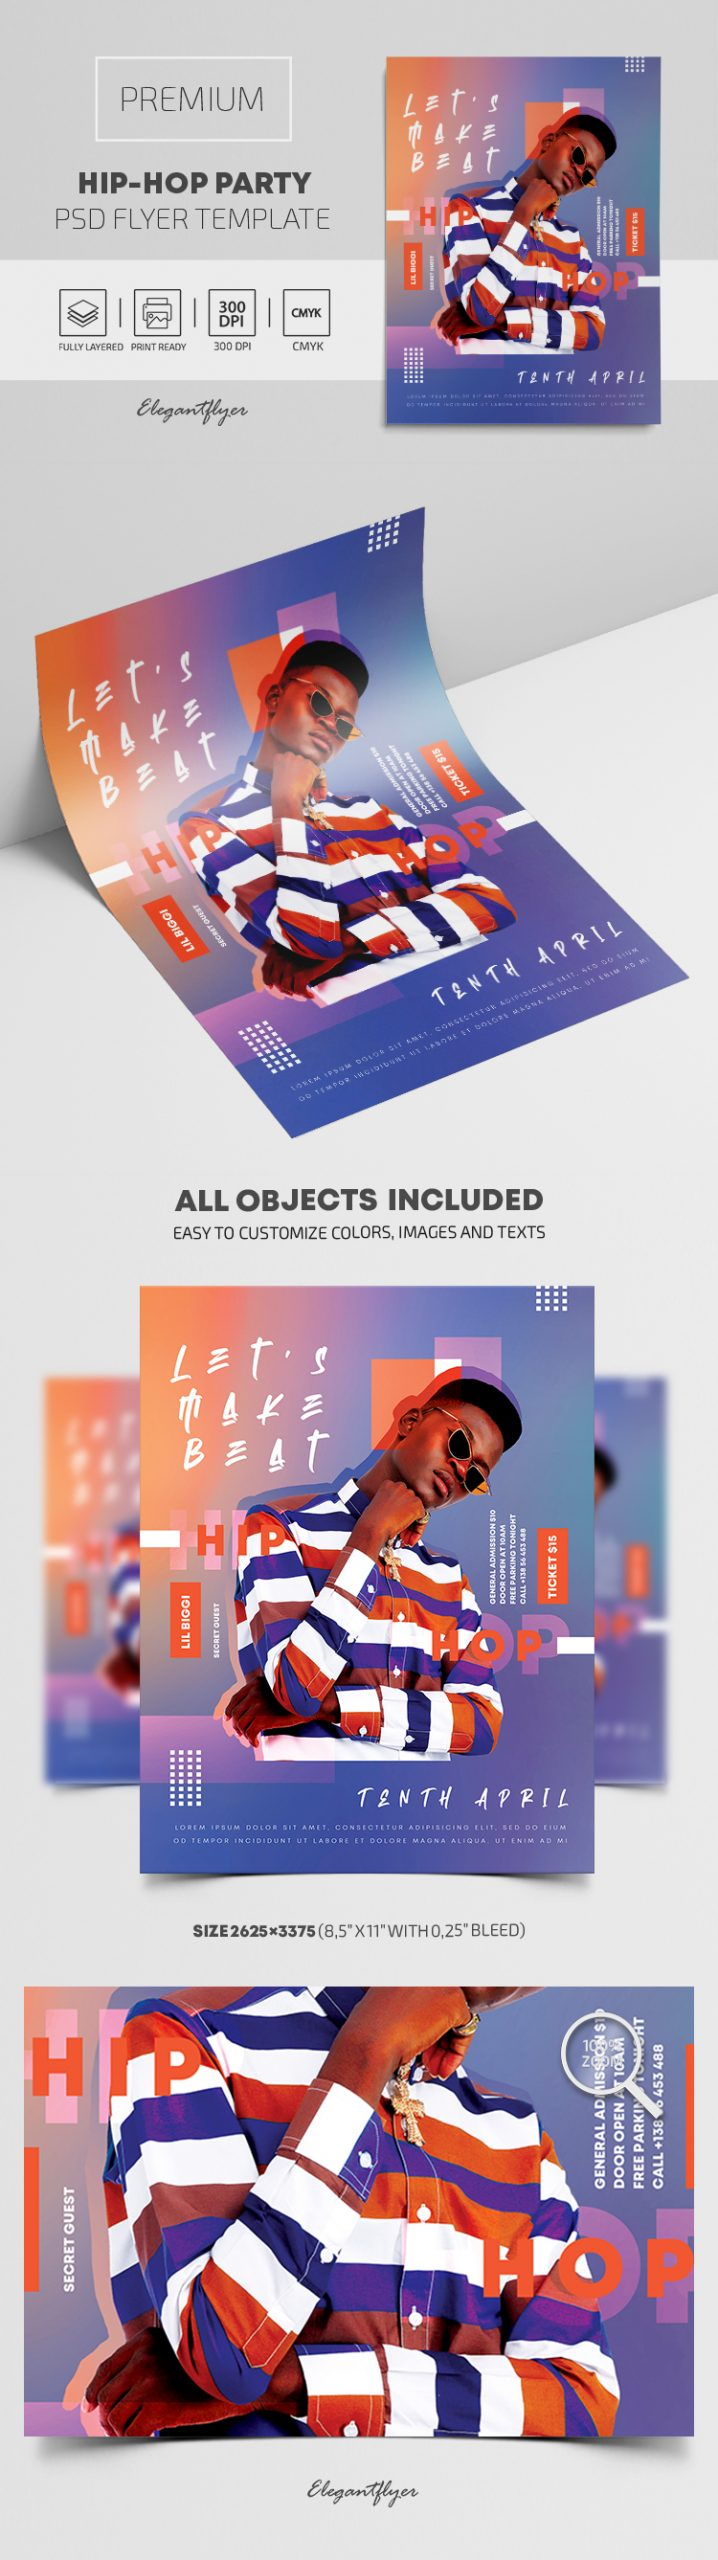 Hip-Hop Party – Premium PSD Flyer Template